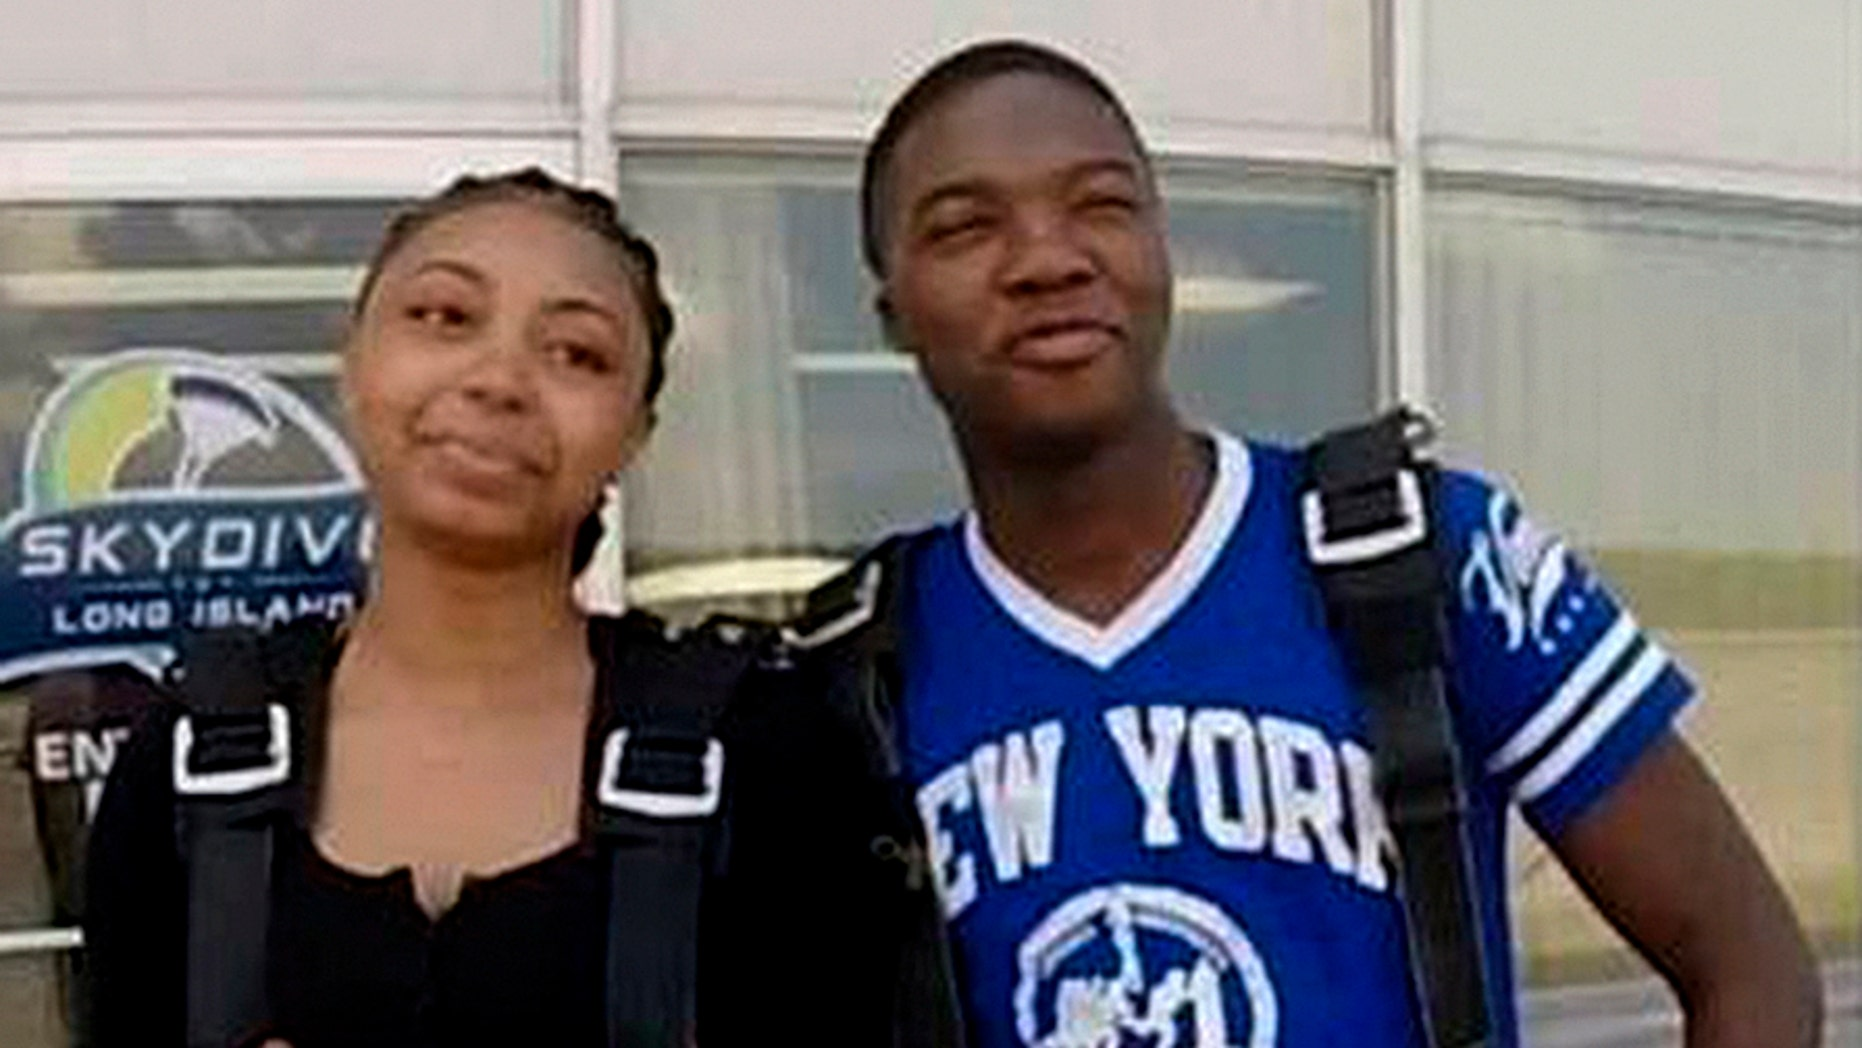 Police on Long Island say skydiving video shows a man and woman wanted for stealing a credit card to go on the jump.